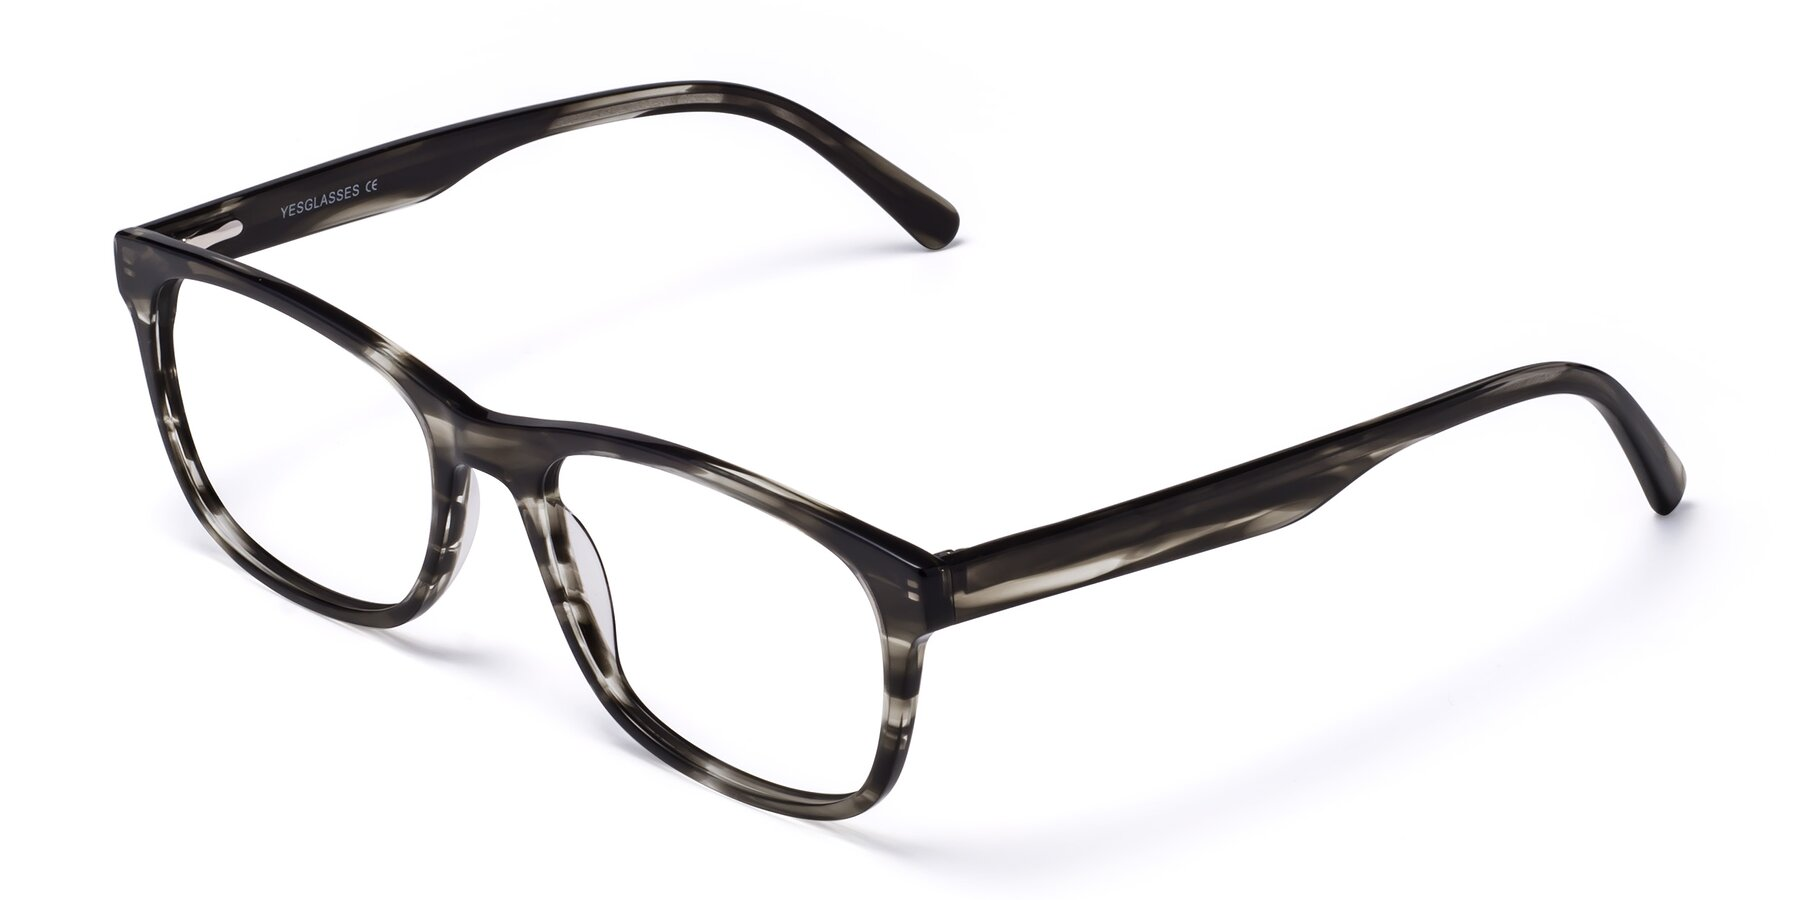 Angle of SR6035 in Gray-Tortoise with Clear Eyeglass Lenses